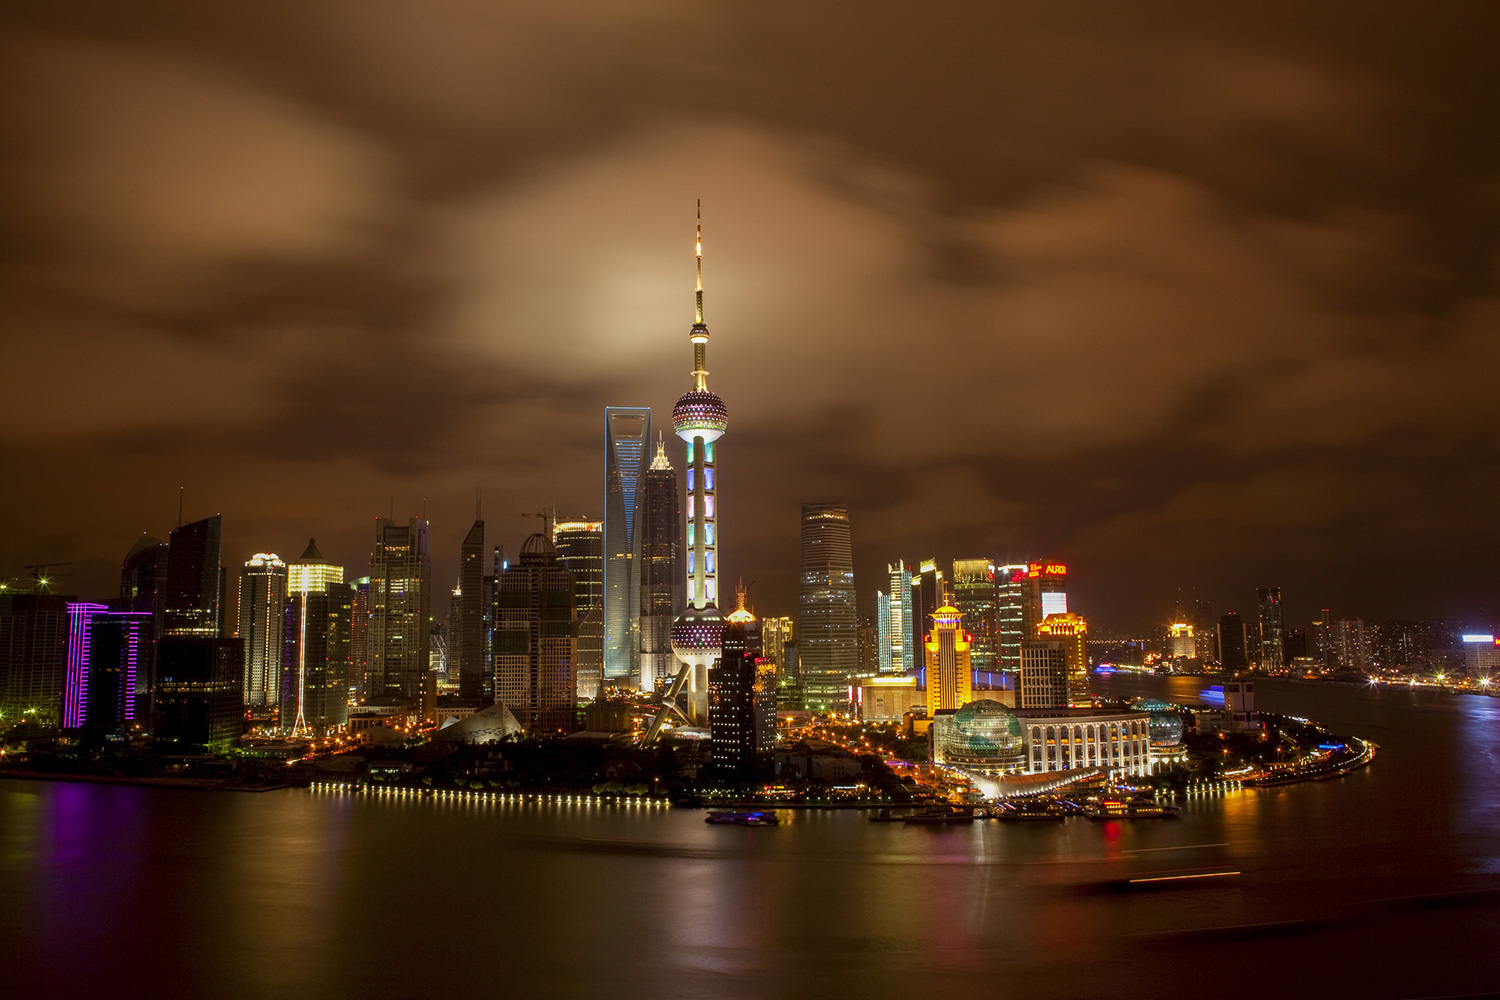 Images of Shanghai's Pudong New Area skyline have been used often in both Chinese and western media as a symbol to illustrate stories about China's economy, projecting an image of modern China. After Pudong was established as a special economic zone in 1993, construction sky-rocketed. Here it is 17 years later on a night in 2010.